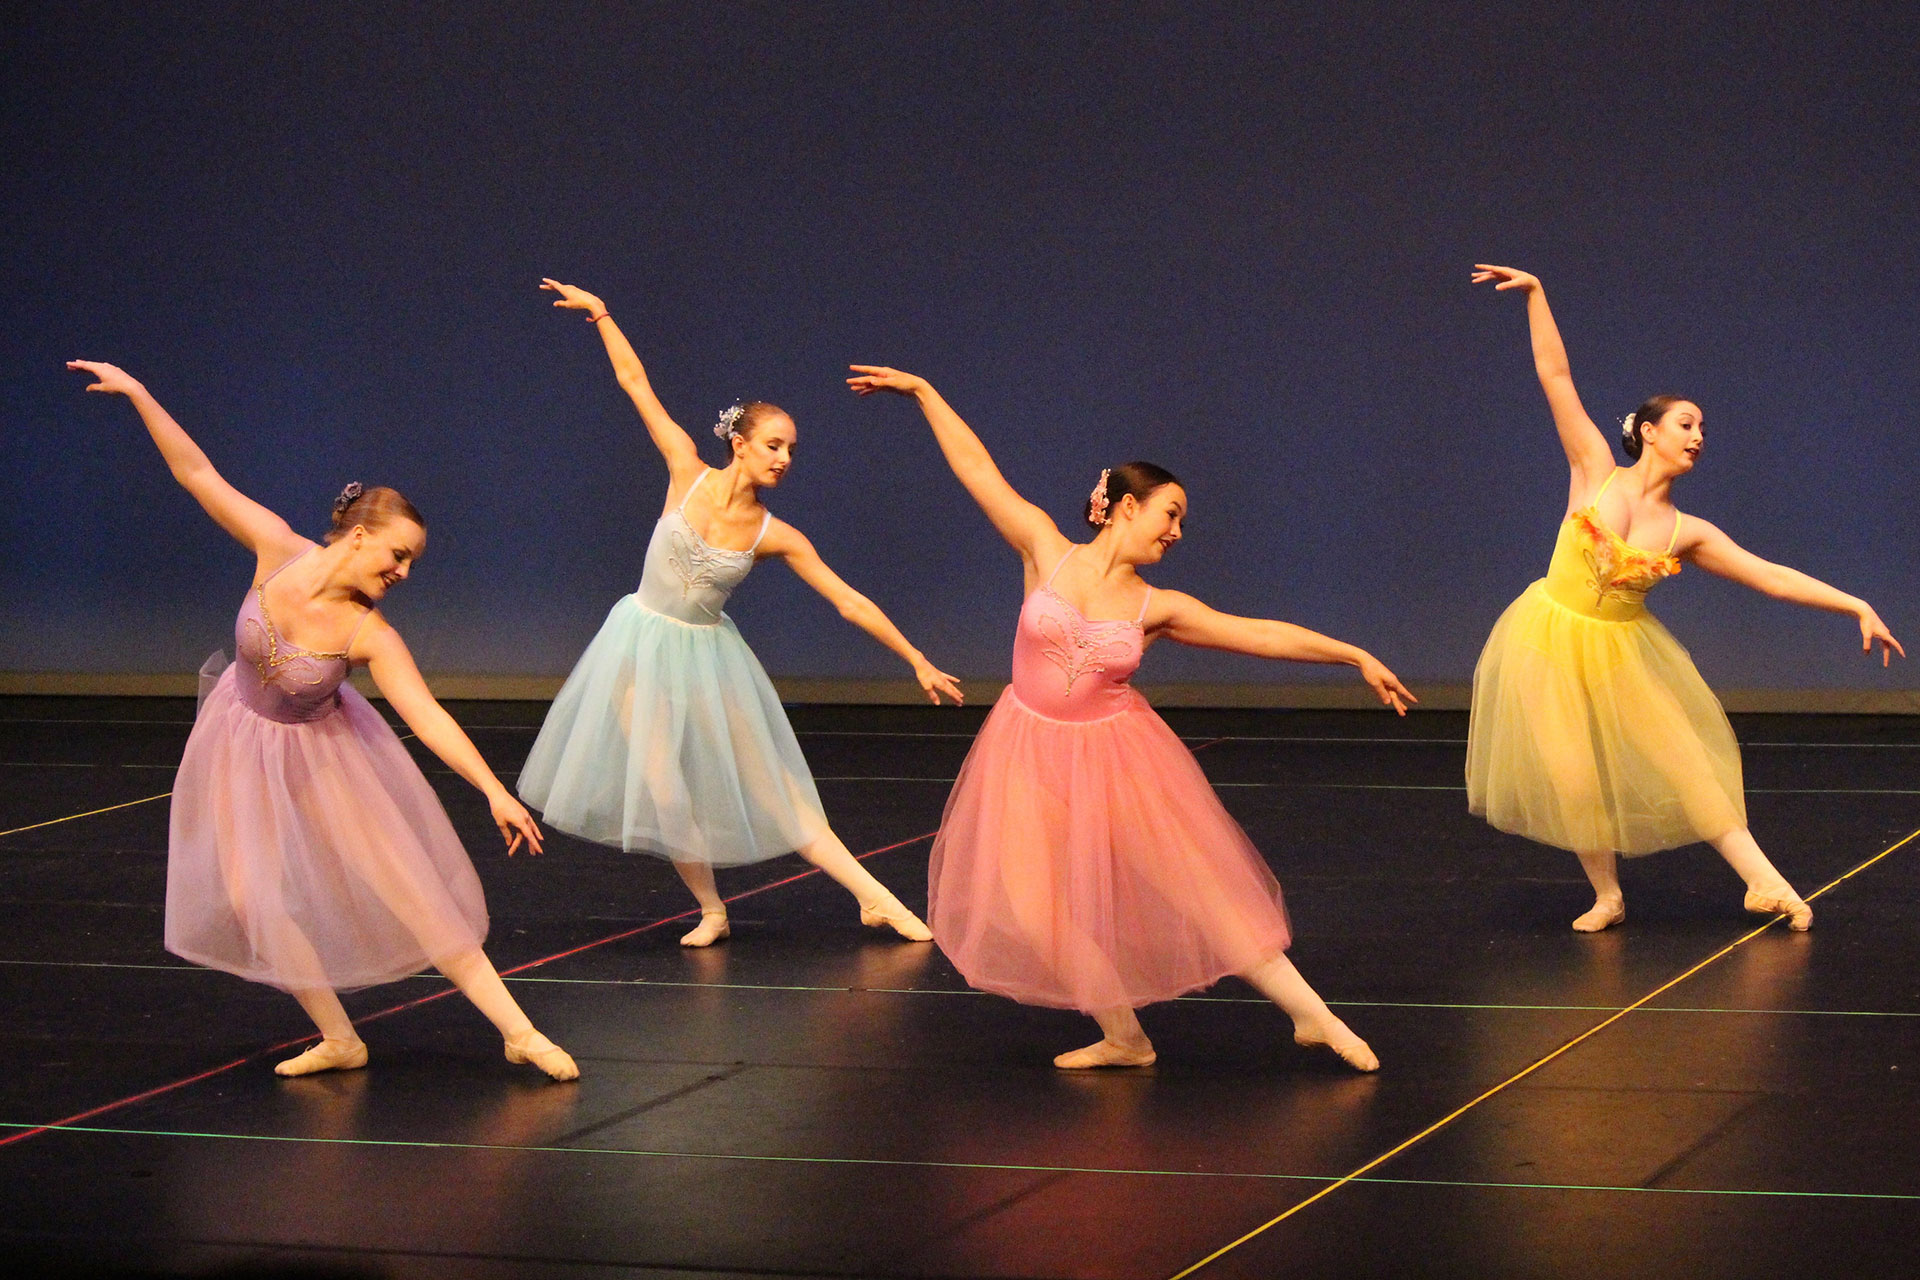 Women performing ballet dance at recital in winnipeg manitoba